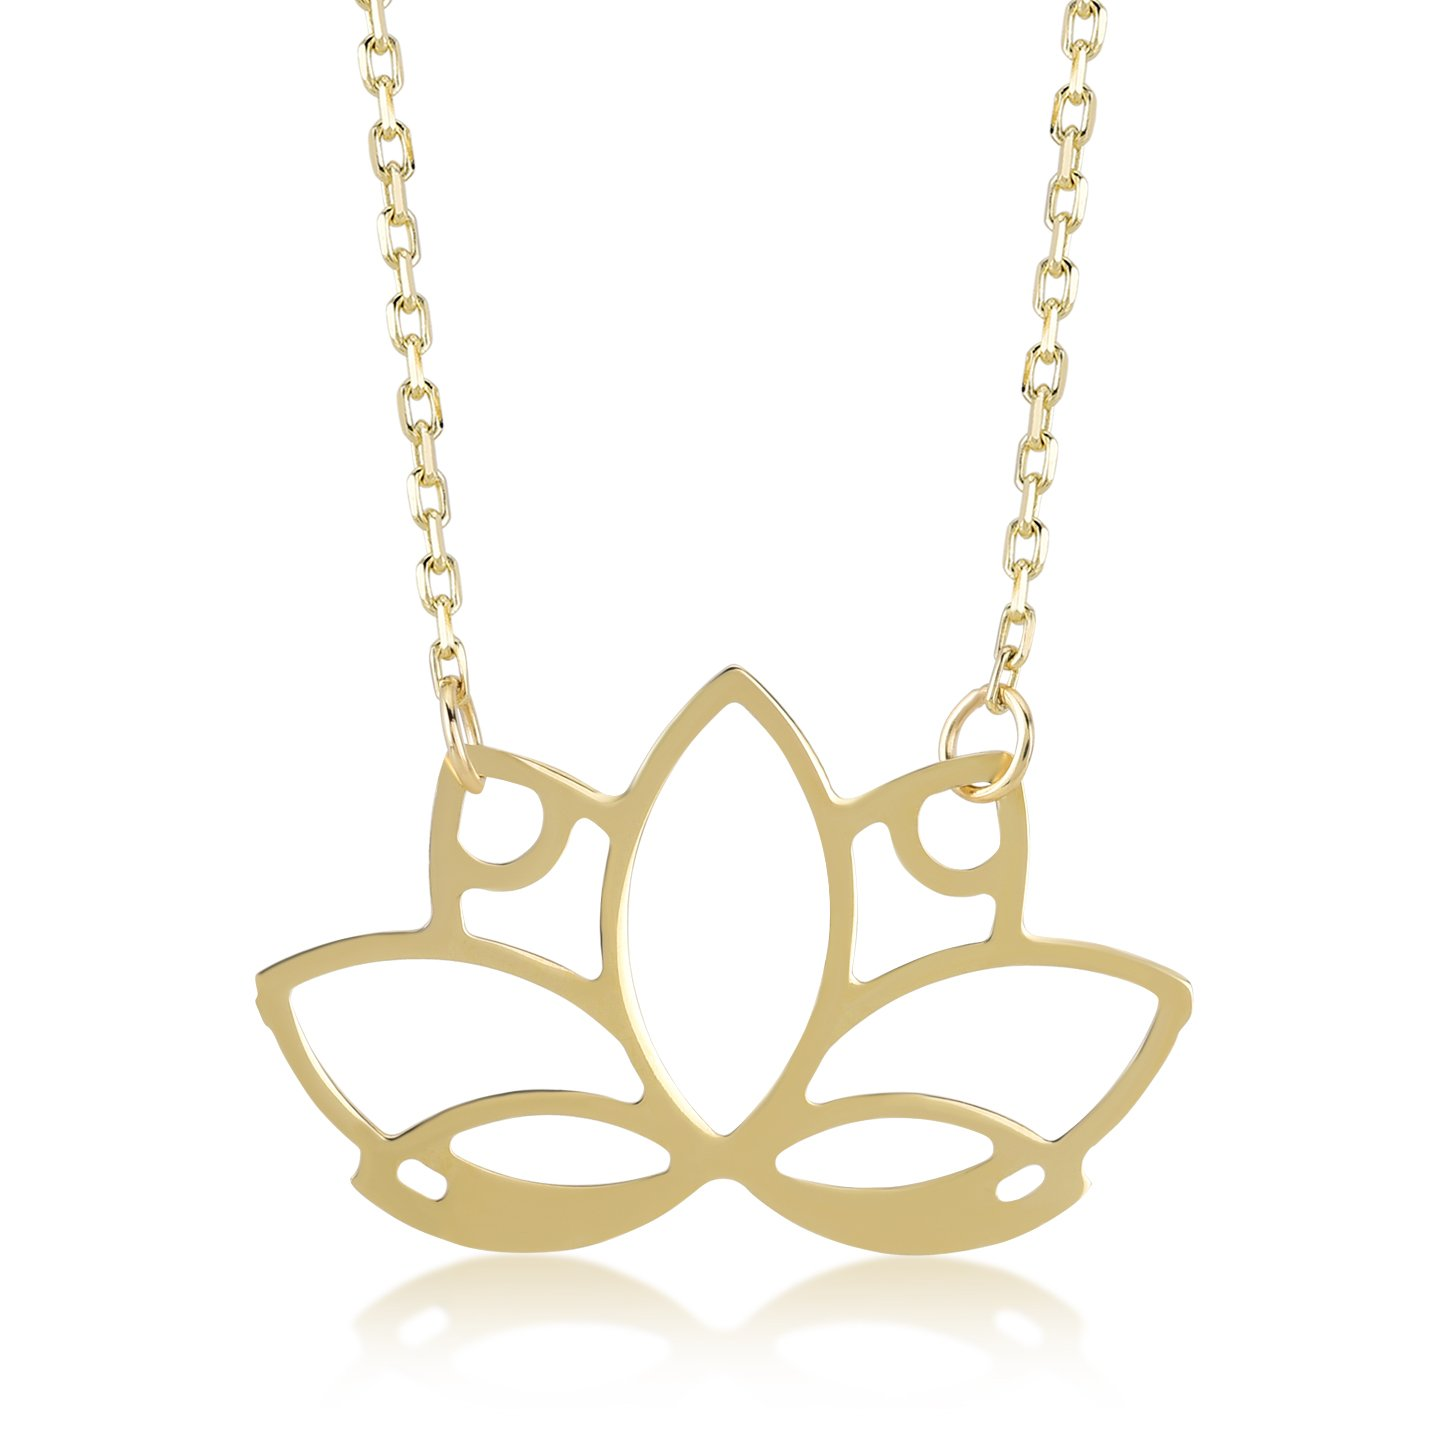 Gelin 14k Real Gold Lotus Flower Necklace for Women, 16.5'' with Chain, Fine Jewelry Best Gifts for Girlfriend, Wife and Yoga Lovers